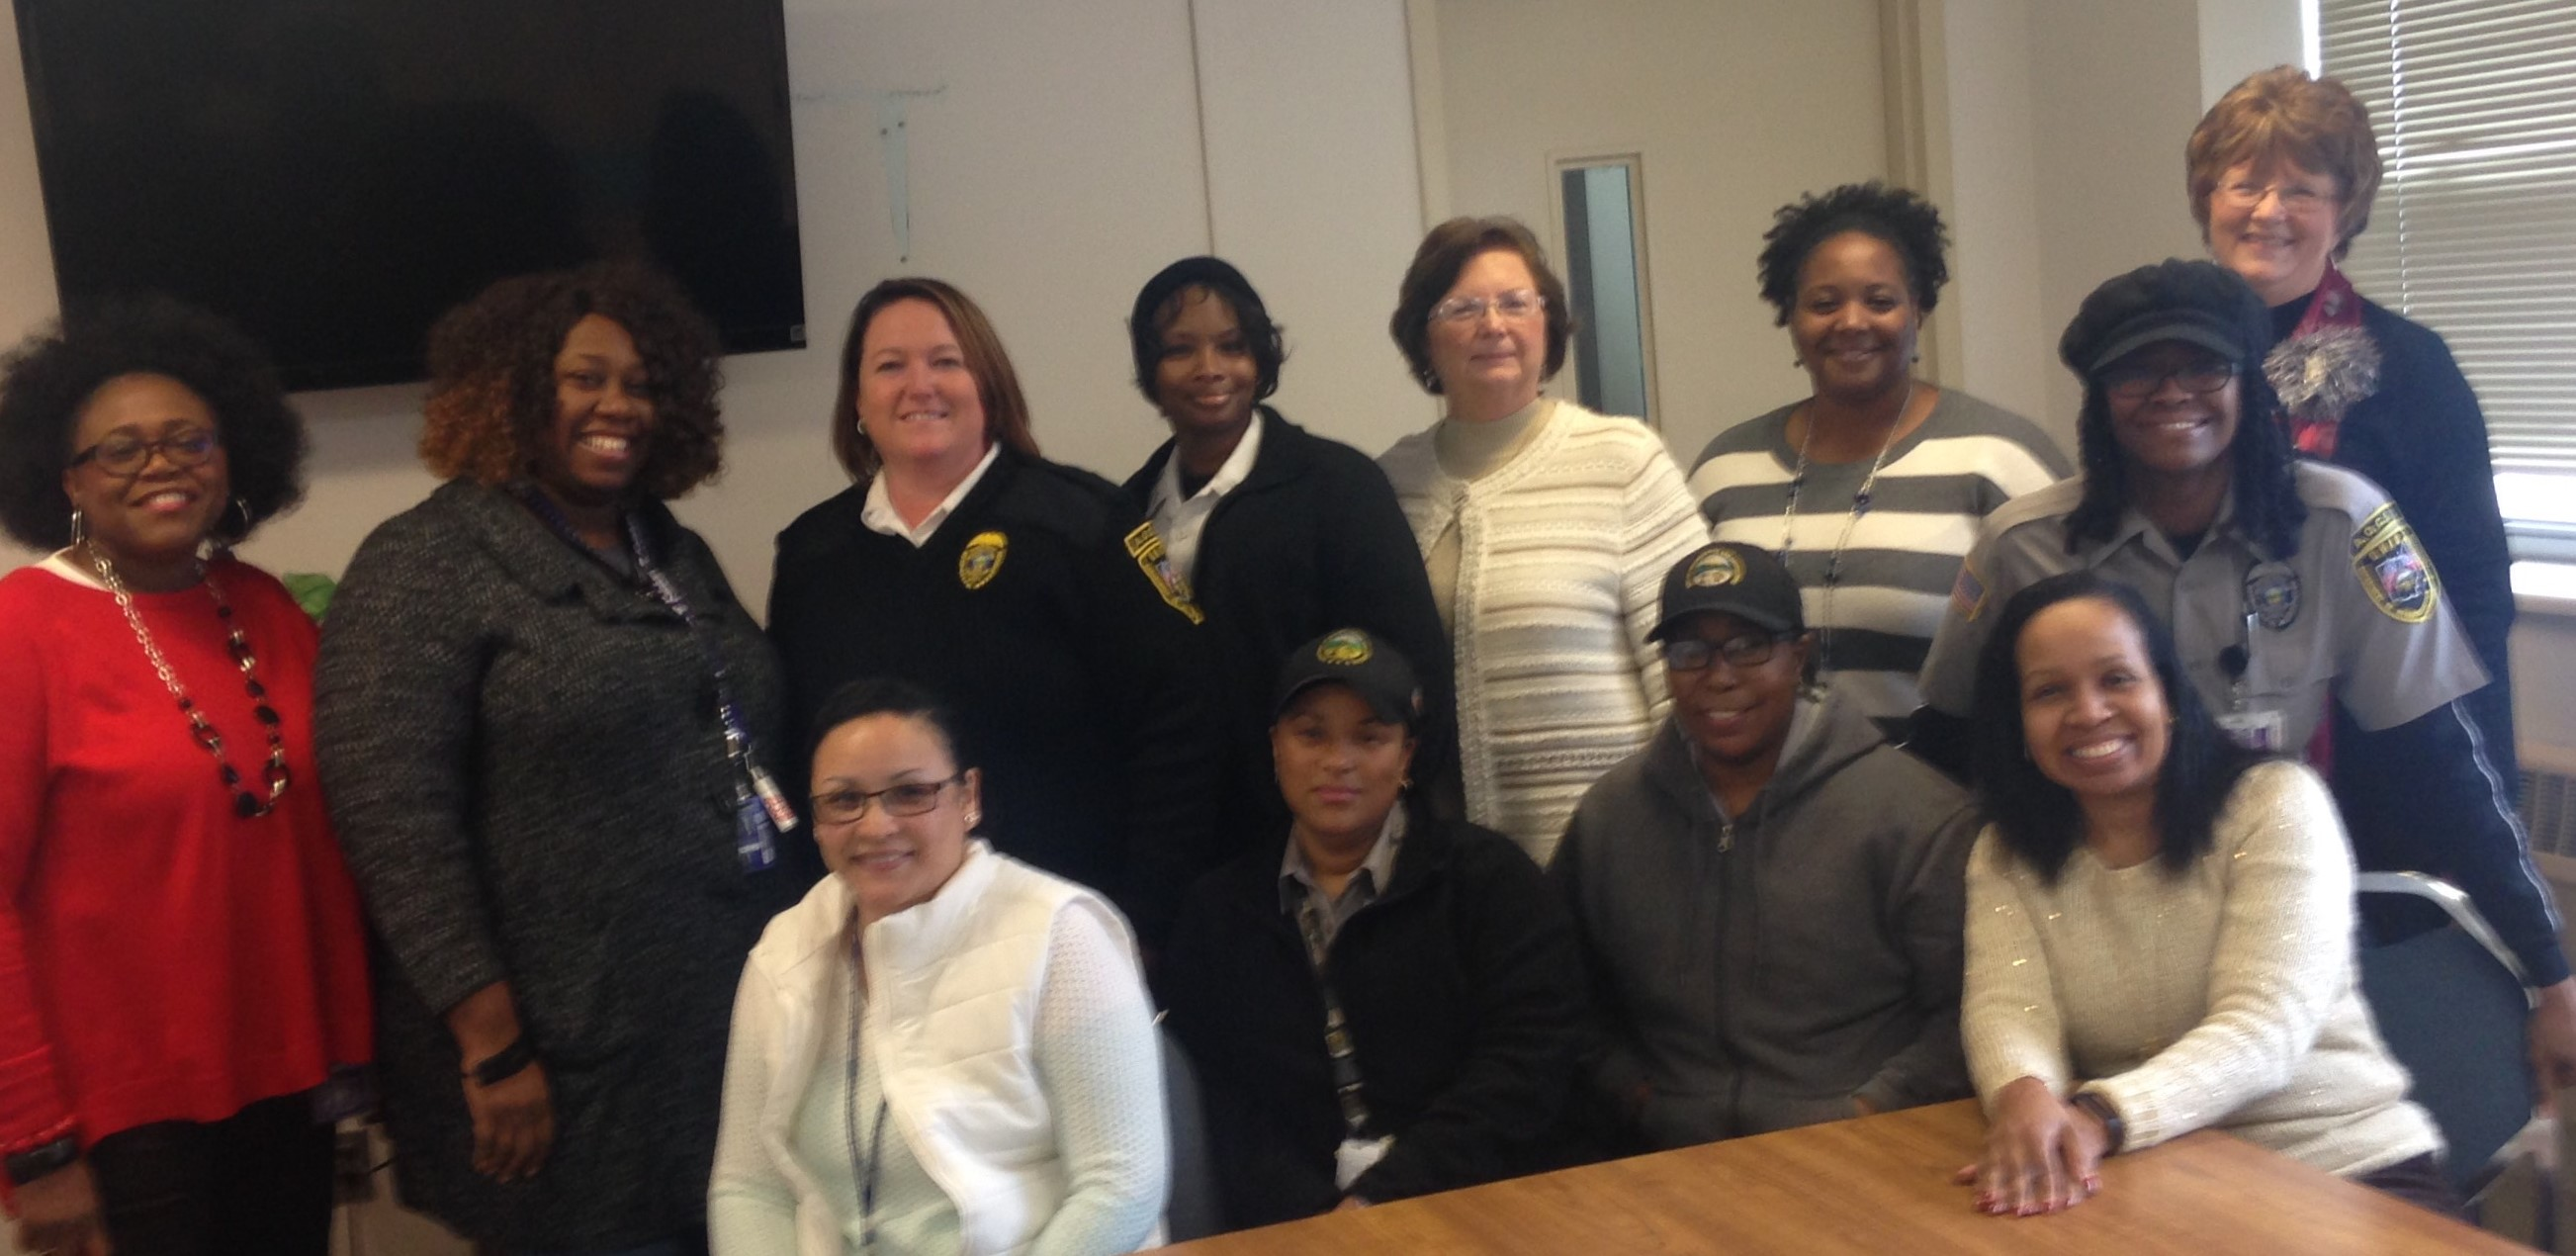 AOCI Women in Corrections Raise Funds